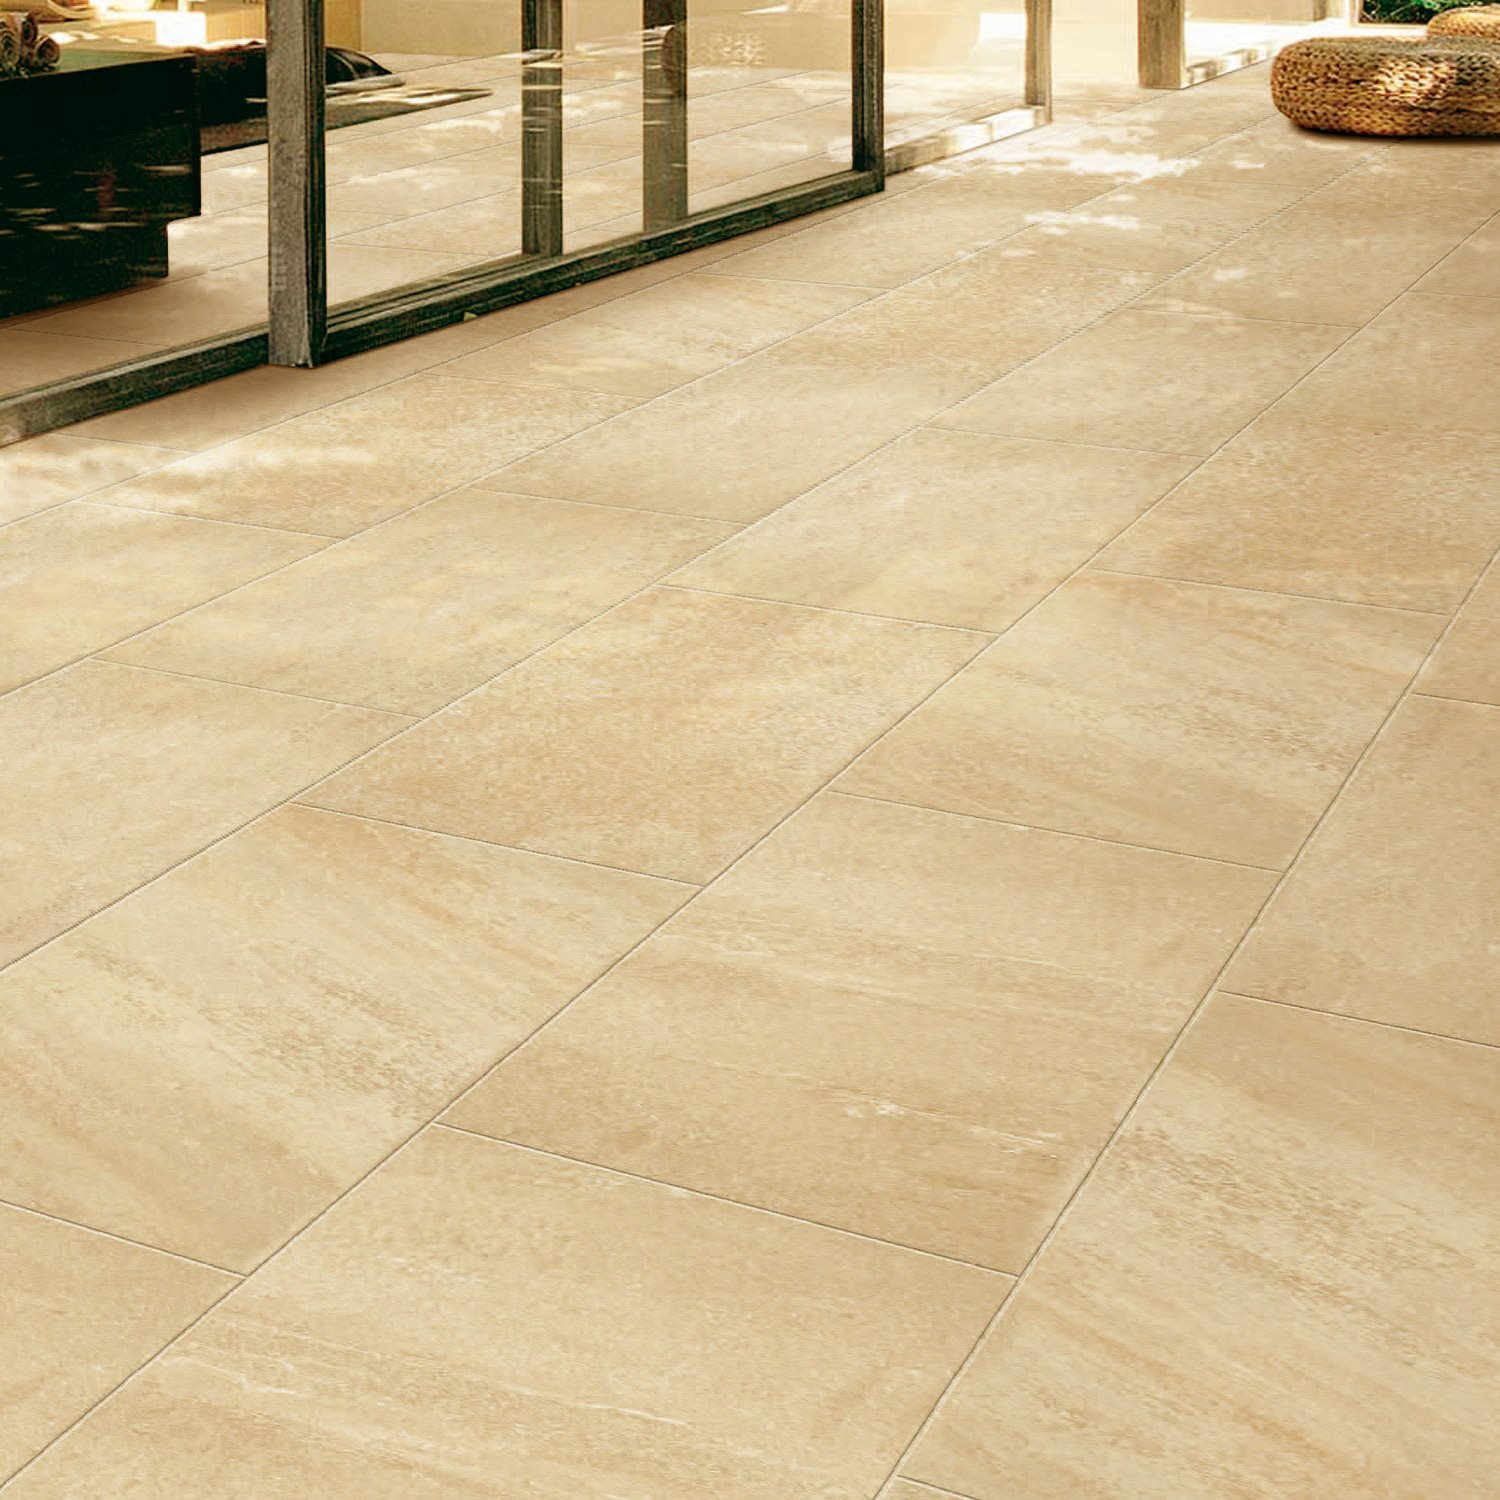 Marmorfliesen Beige Floor Tiles Travertine Optic Pisa Polished